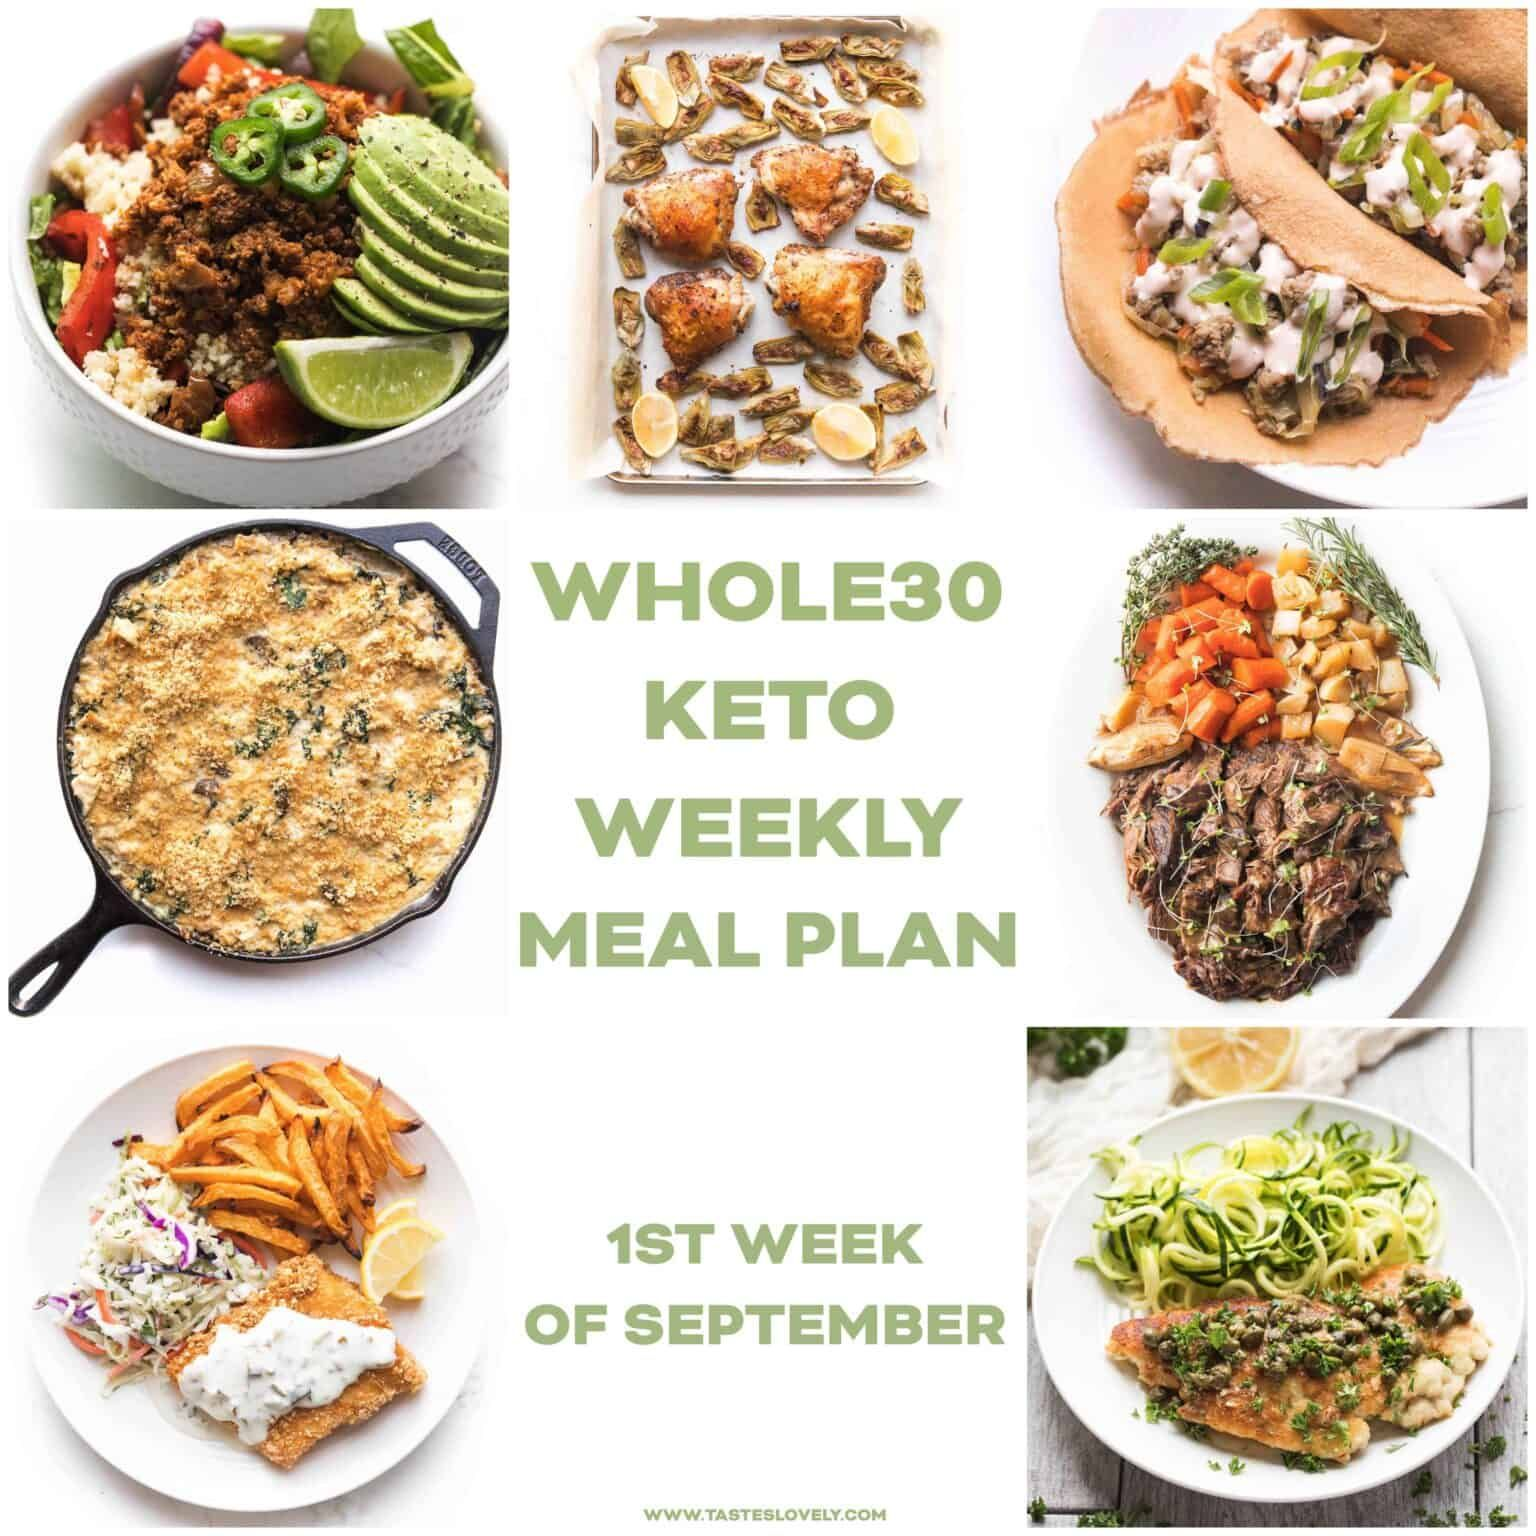 Whole30 + Keto Weekly Meal Plan for the 1st week of ...